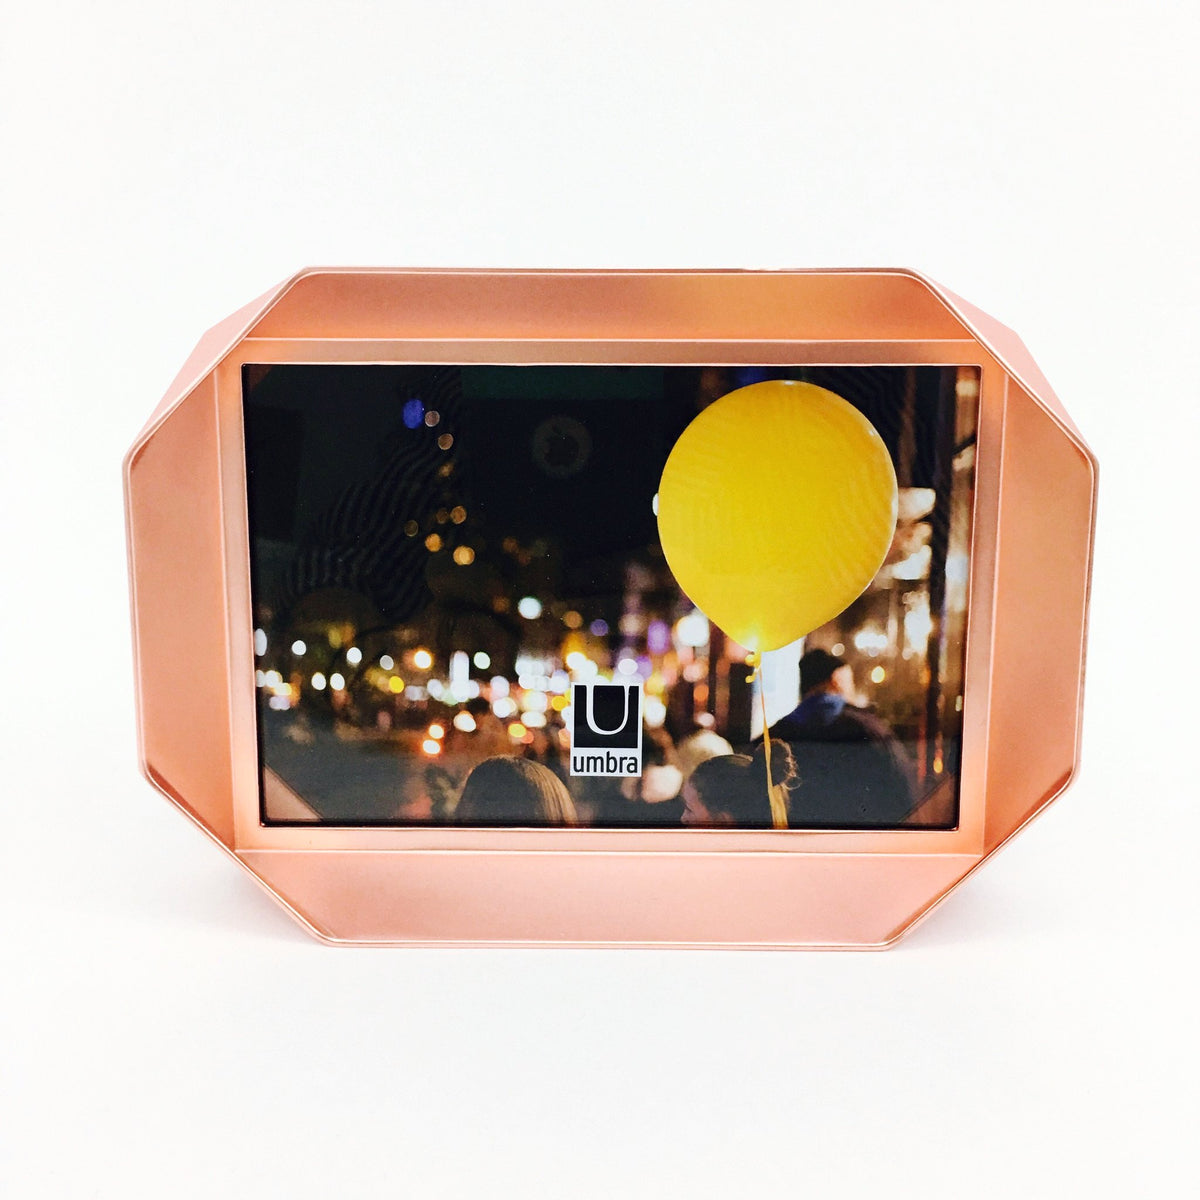 """Fotobend"" Picture Frame in Copper by Umbra - 4 x 6 inches"